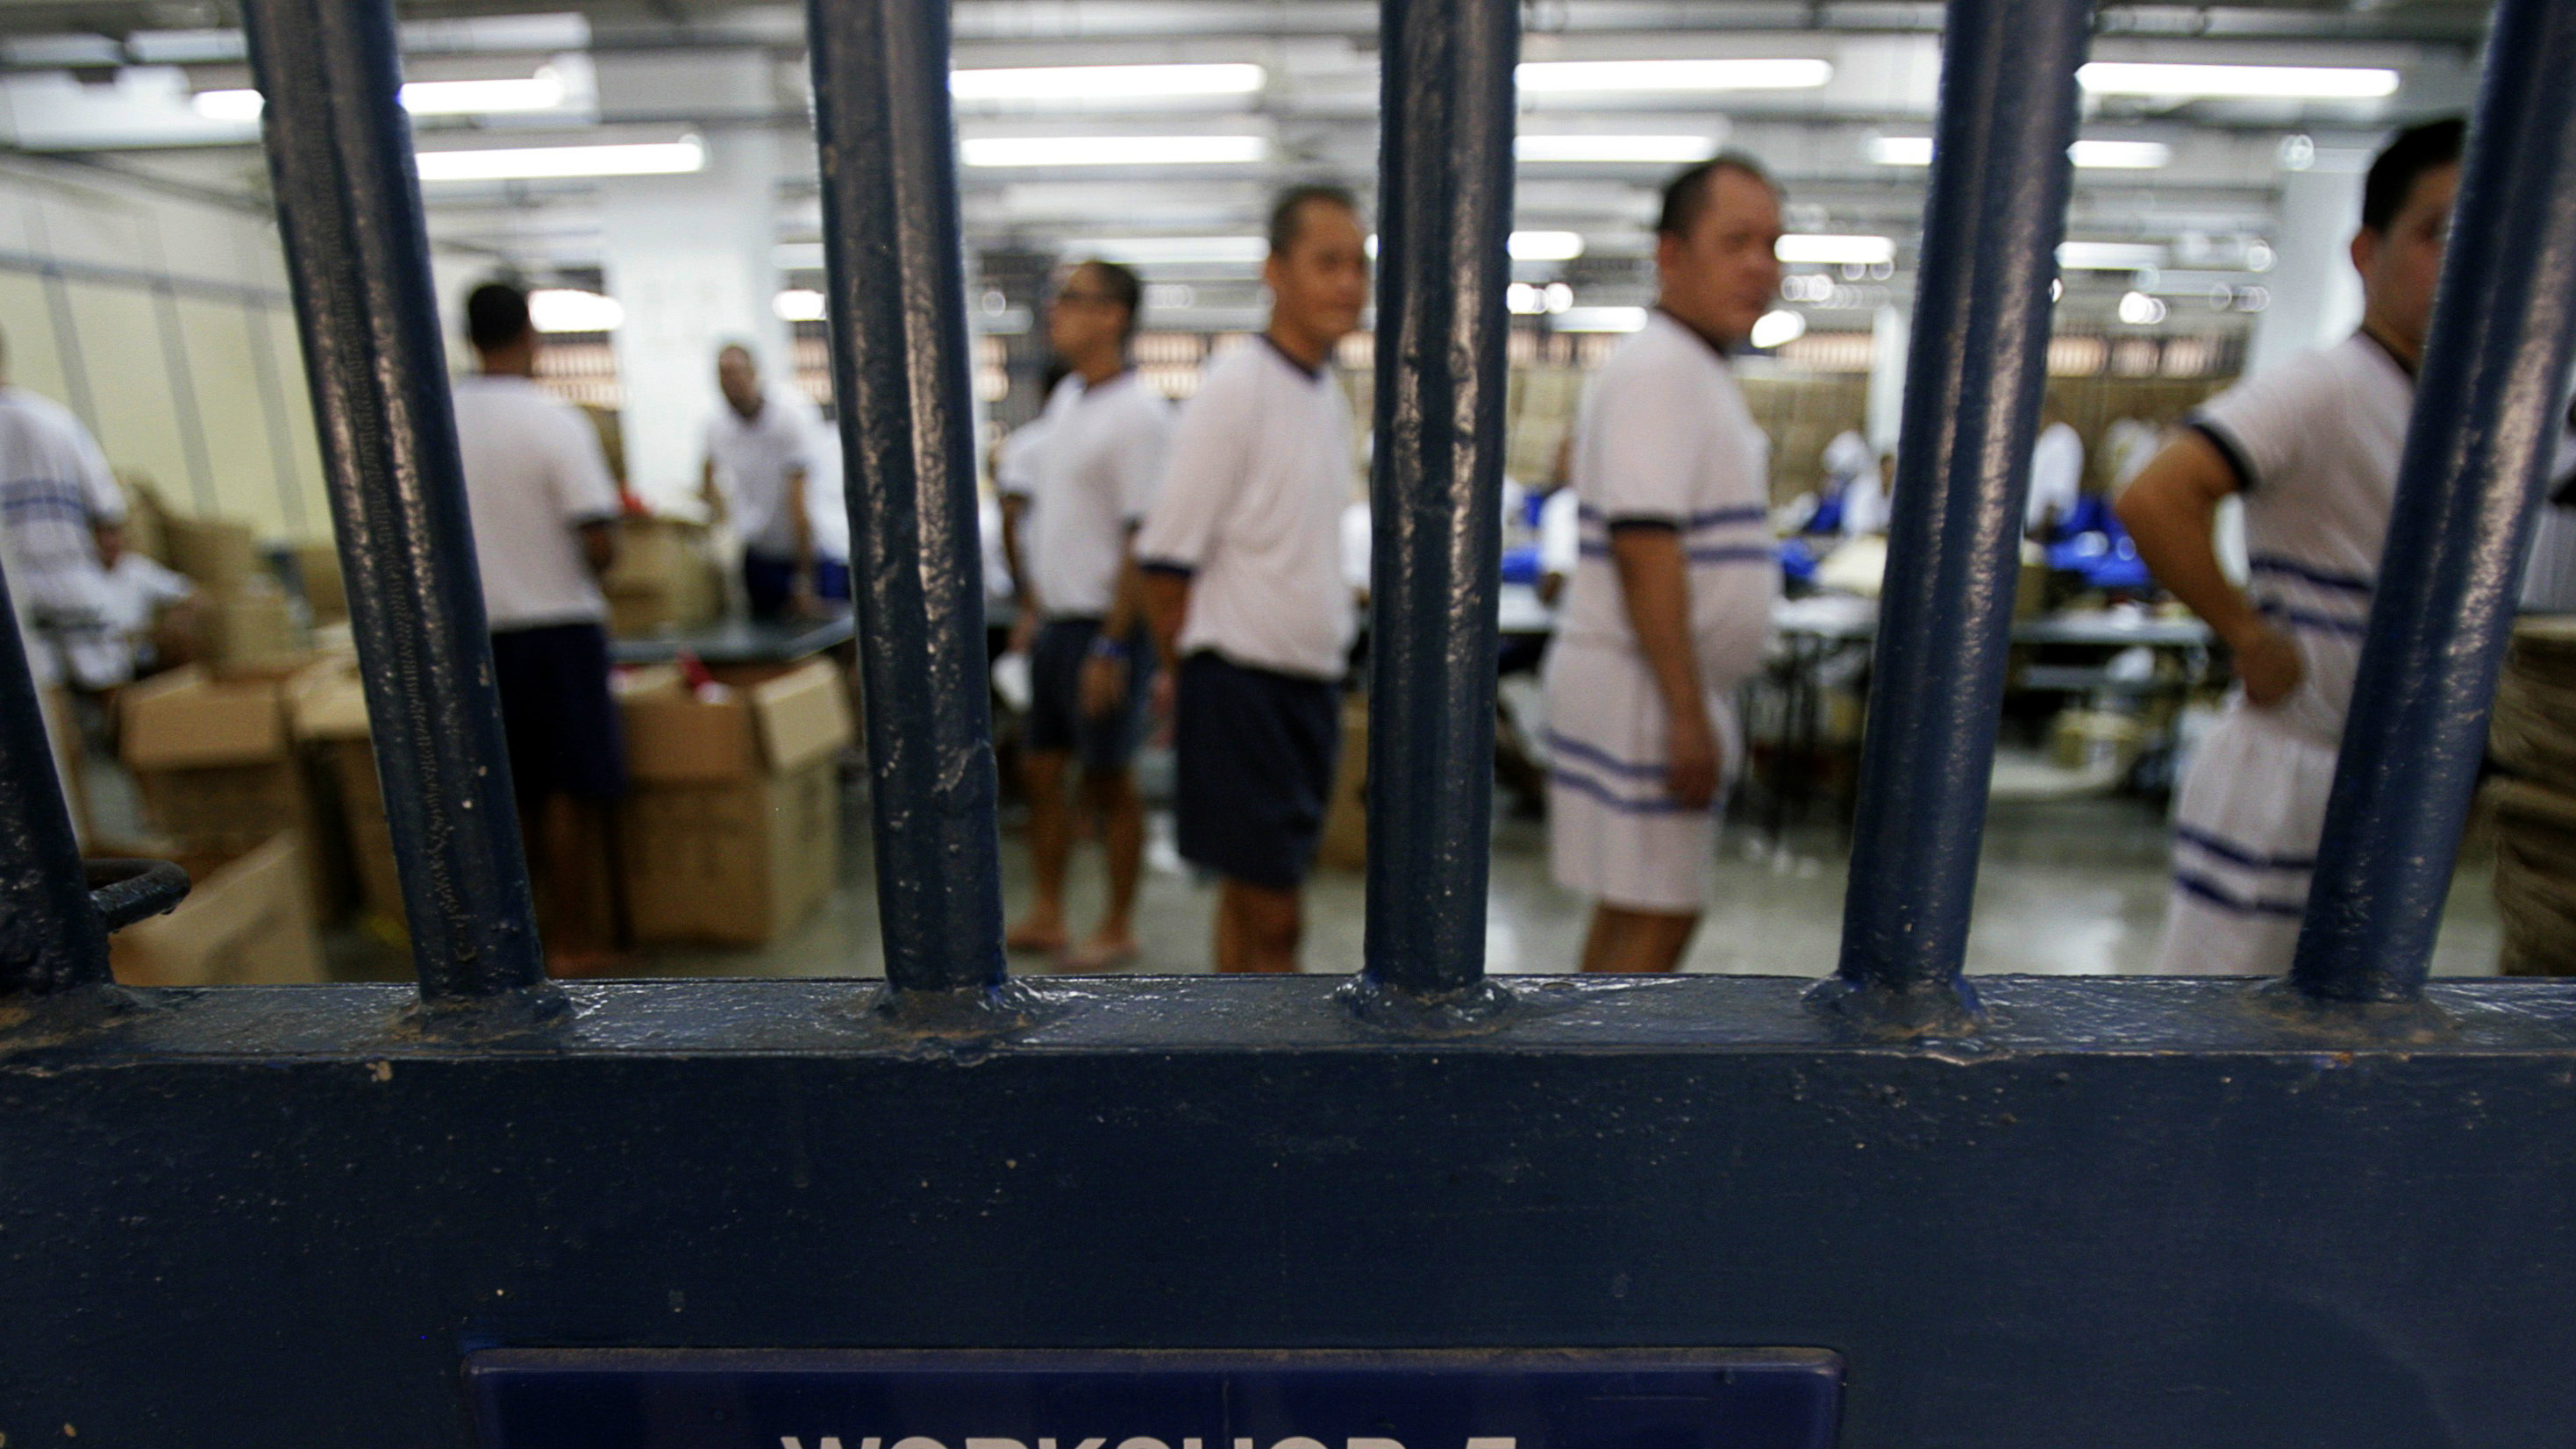 Inmates are seen behind the bars on a gate to a workshop at Sinapore's Tanah Merah Prison June 23, 2009. The inmates have been preparing goodie bags to be given away to spectators at this year's National Day Parade, as part of the Yellow Ribbon Project which aims to tackle negative community attitudes towards people who have served time in Singapore's prisons.